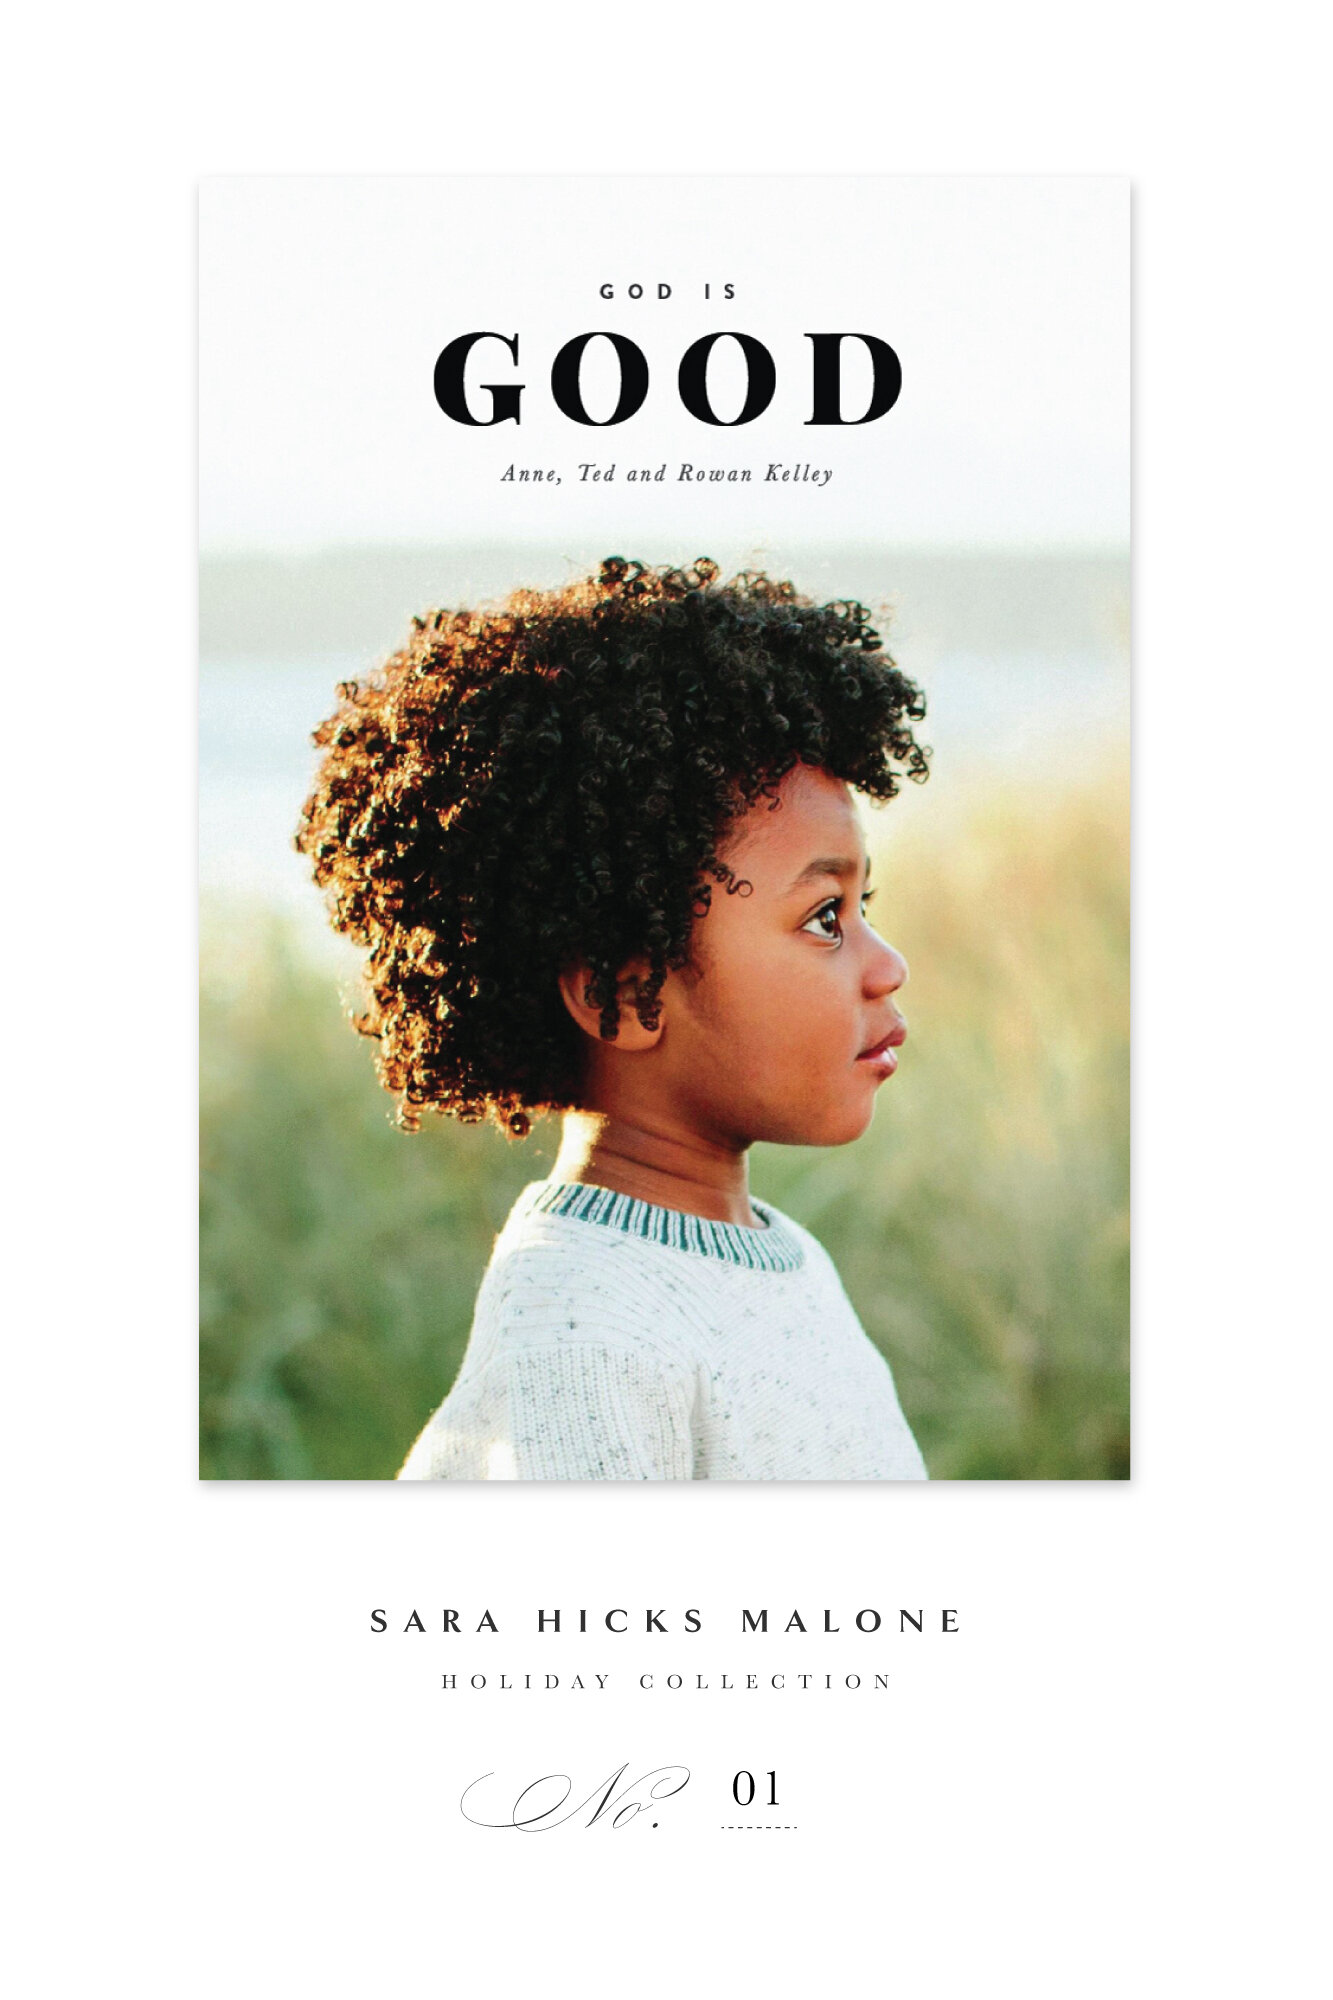 'Good God' by Sara Hicks Malone